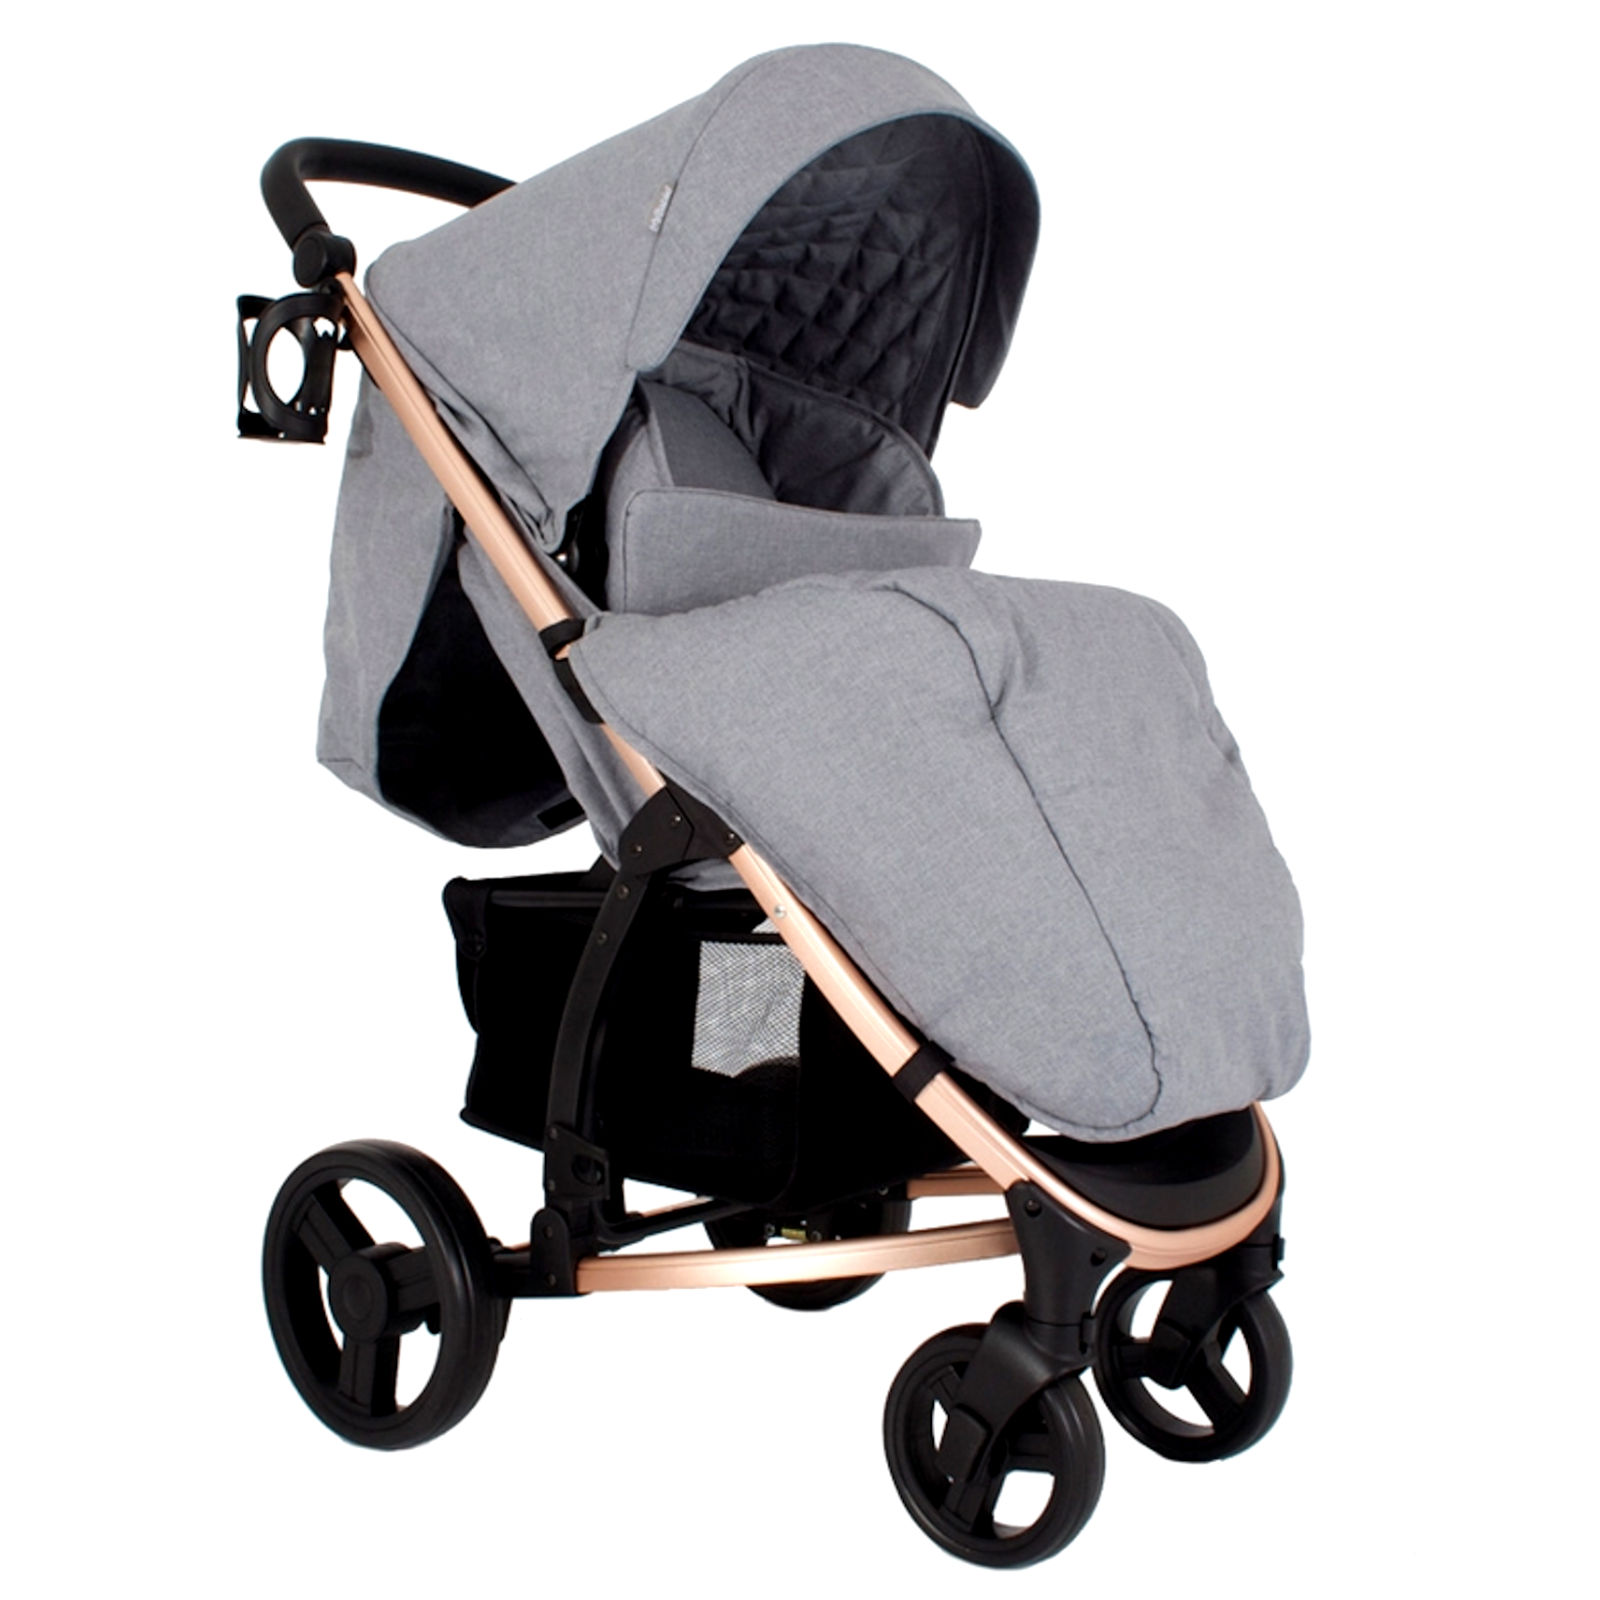 My Babiie Mb200 Billie Faiers Collection Travel System